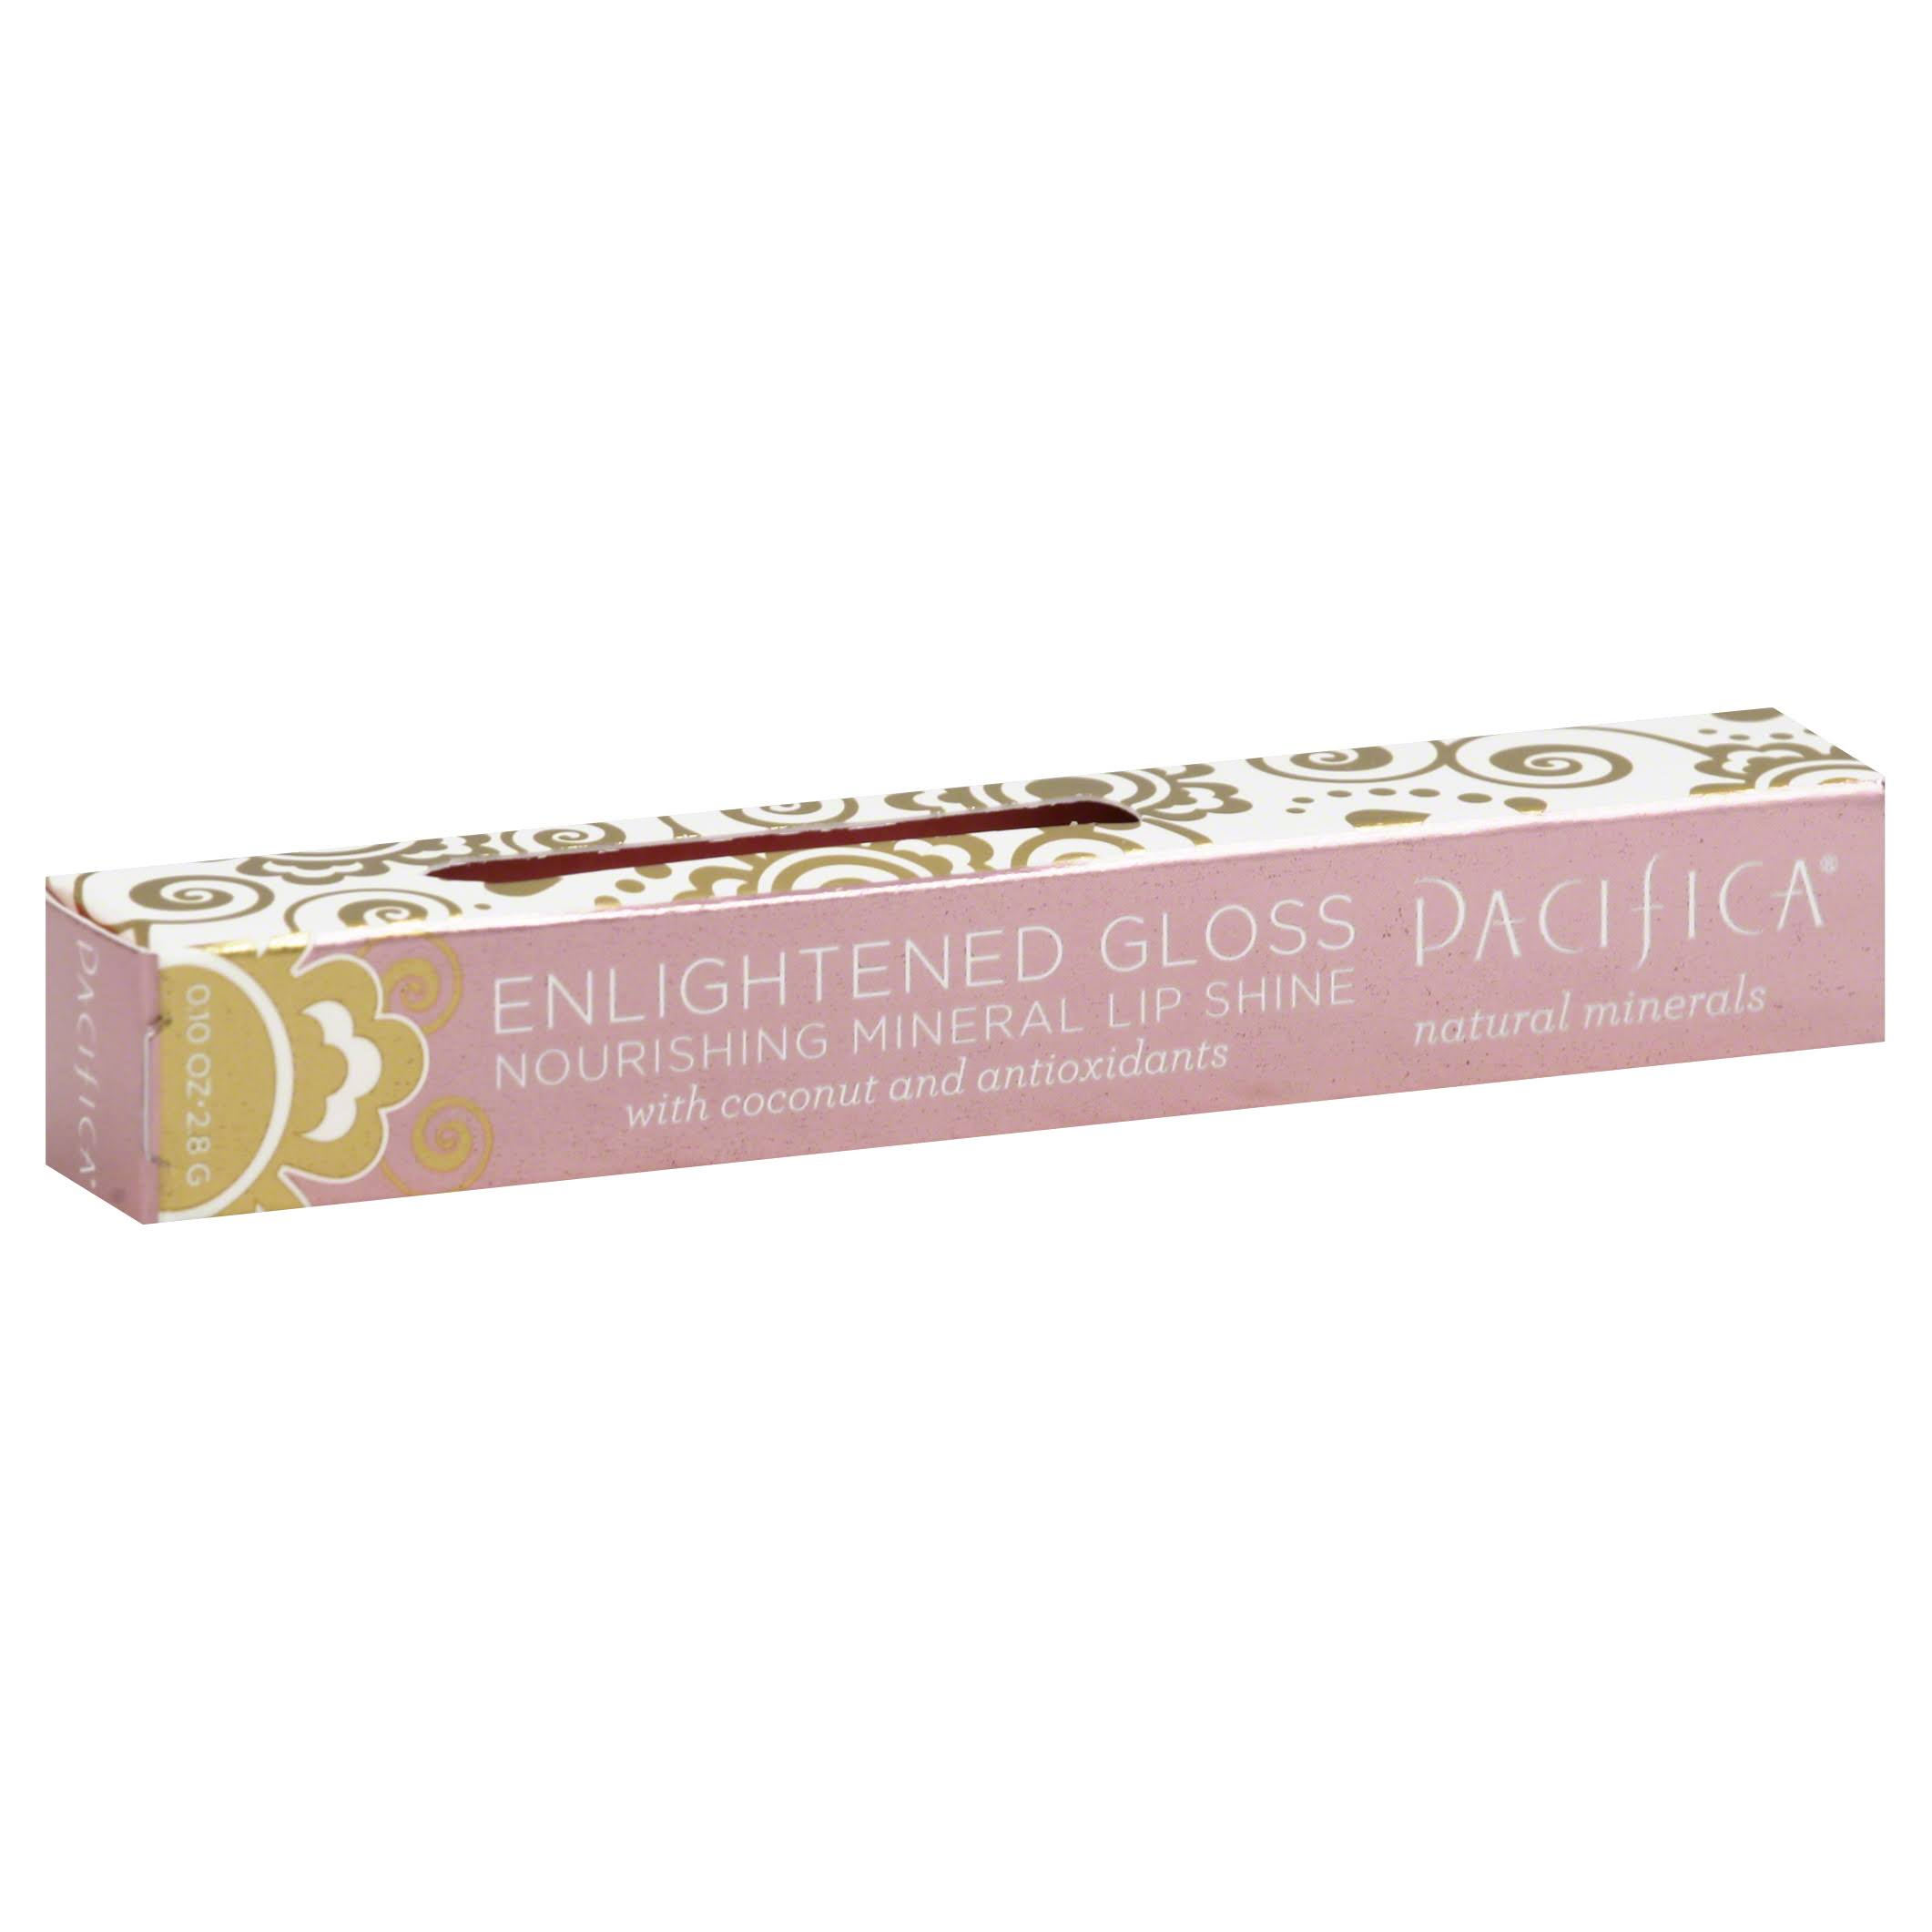 Pacifica Enlightened Gloss Nourishing Mineral Lip Shine - 2.8g, Beach Kiss